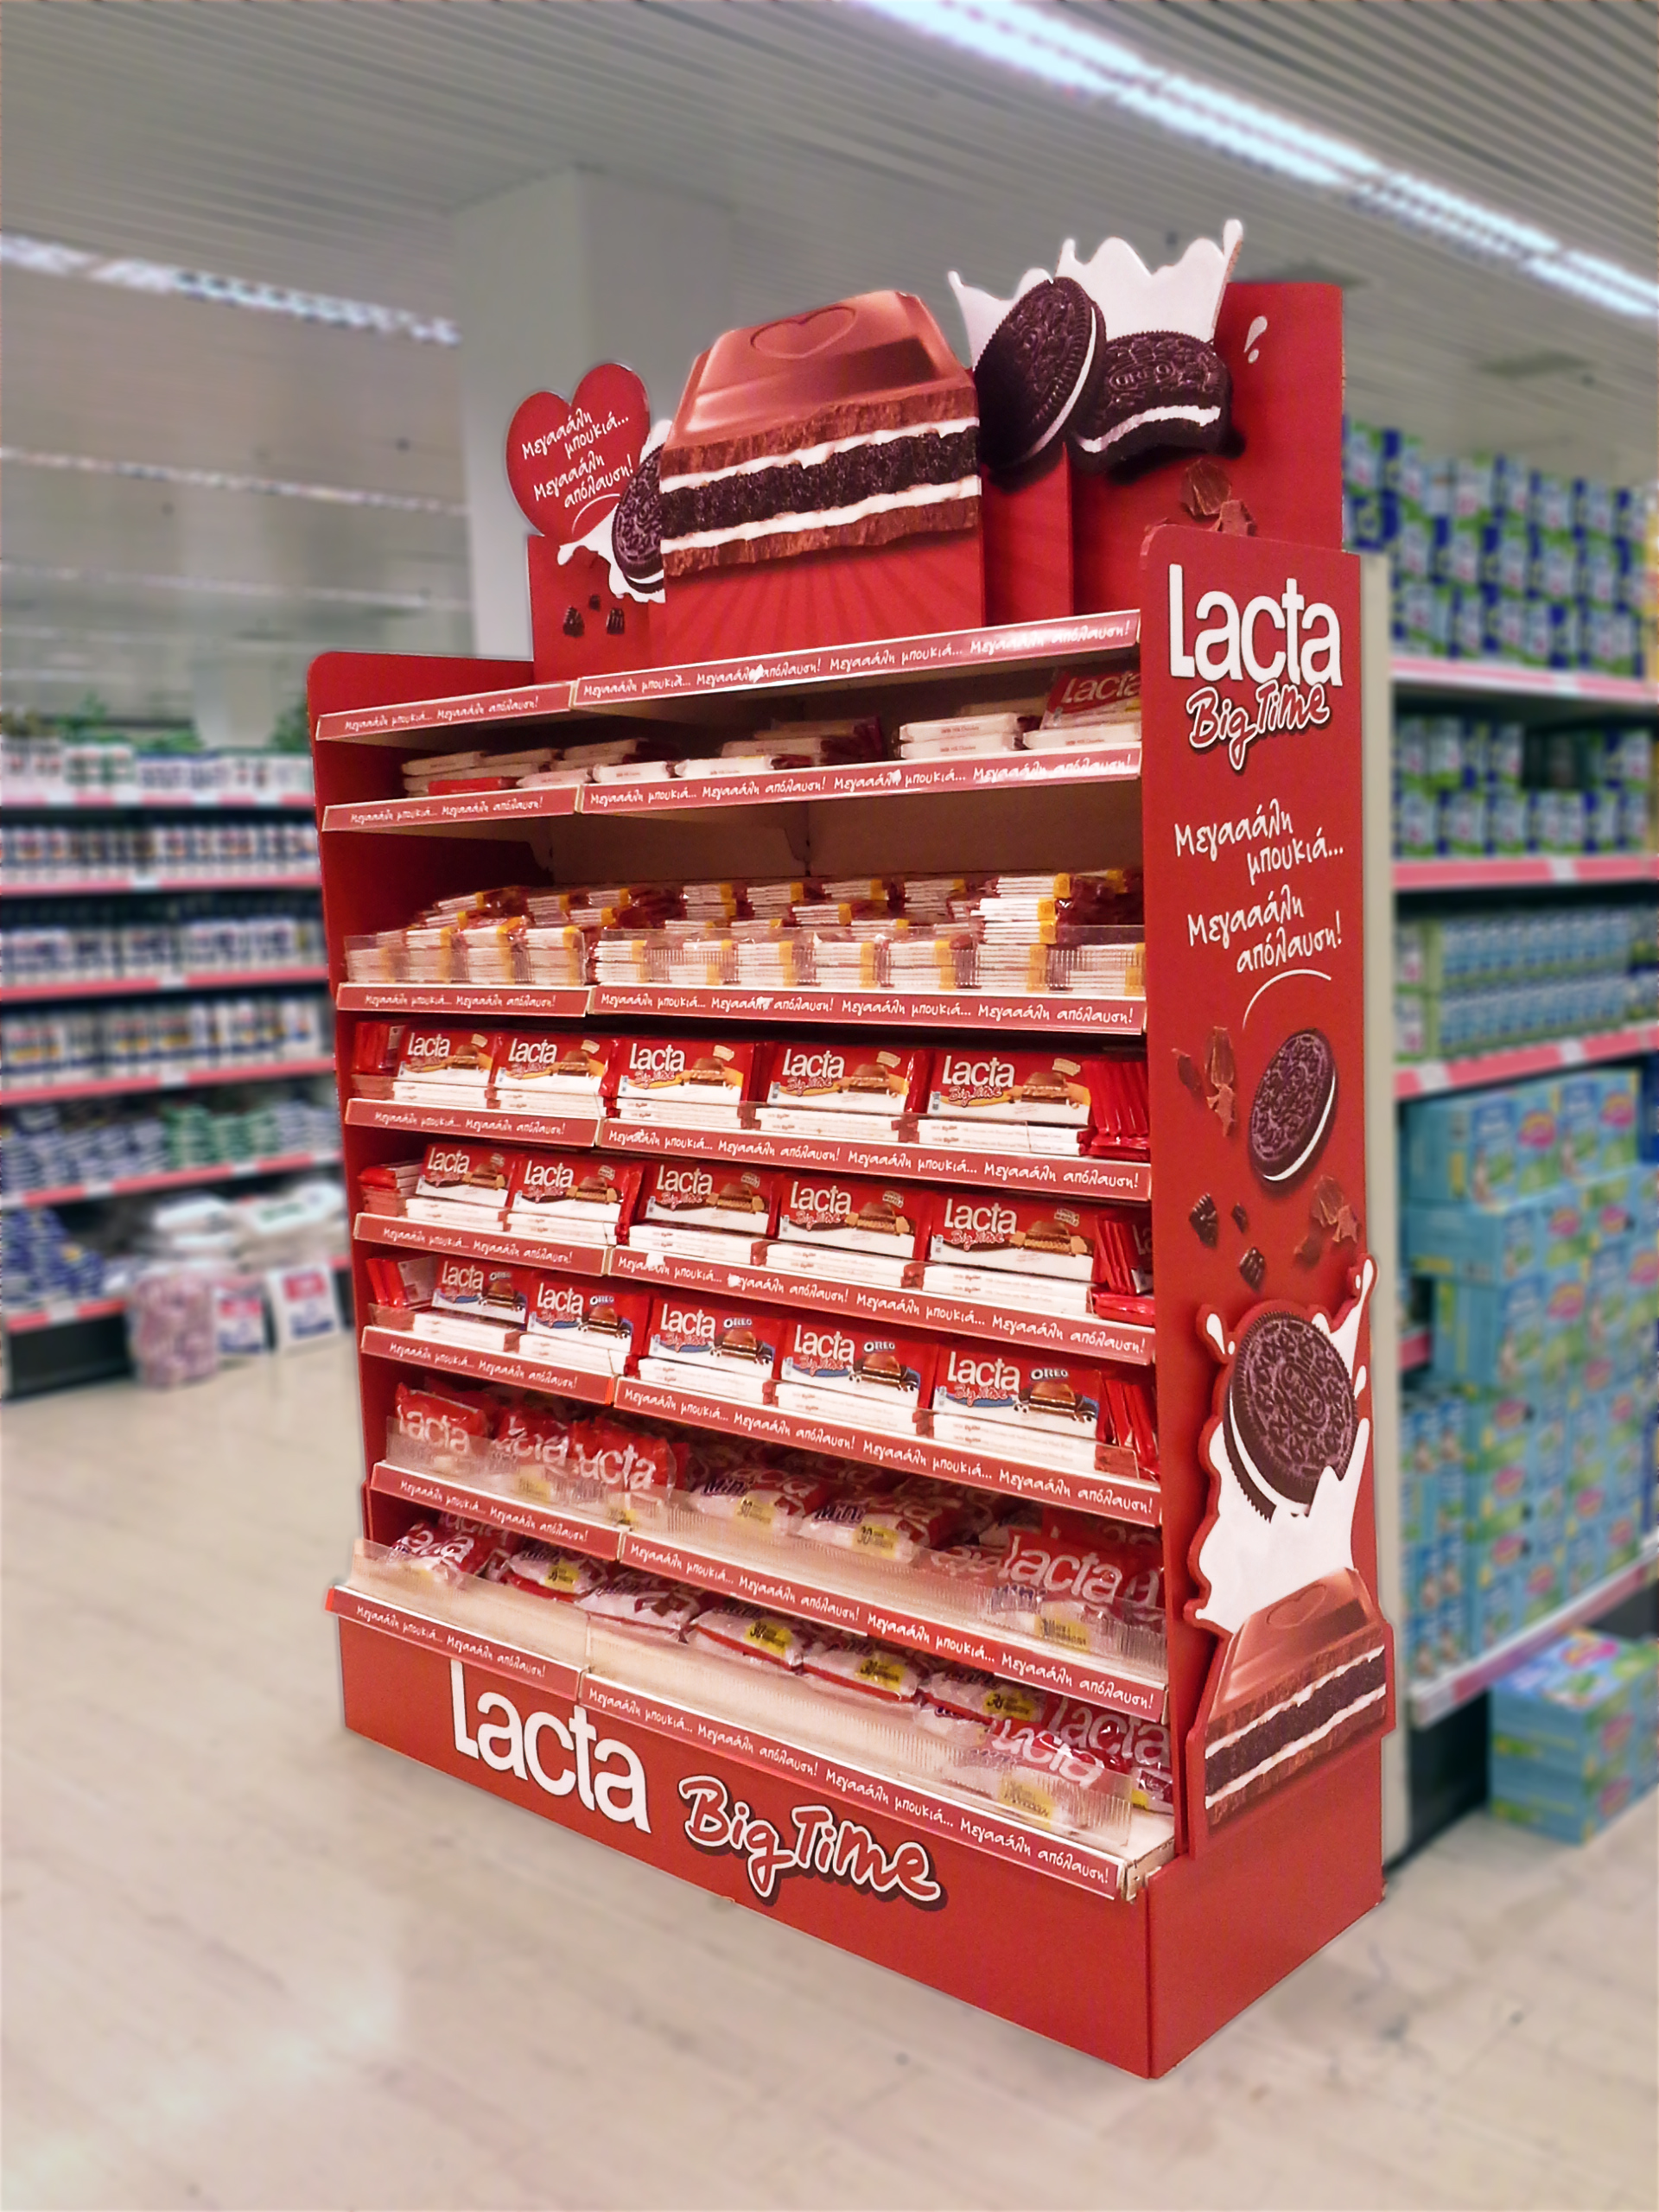 mondelez, lacta, big time, stand, in-store promotion